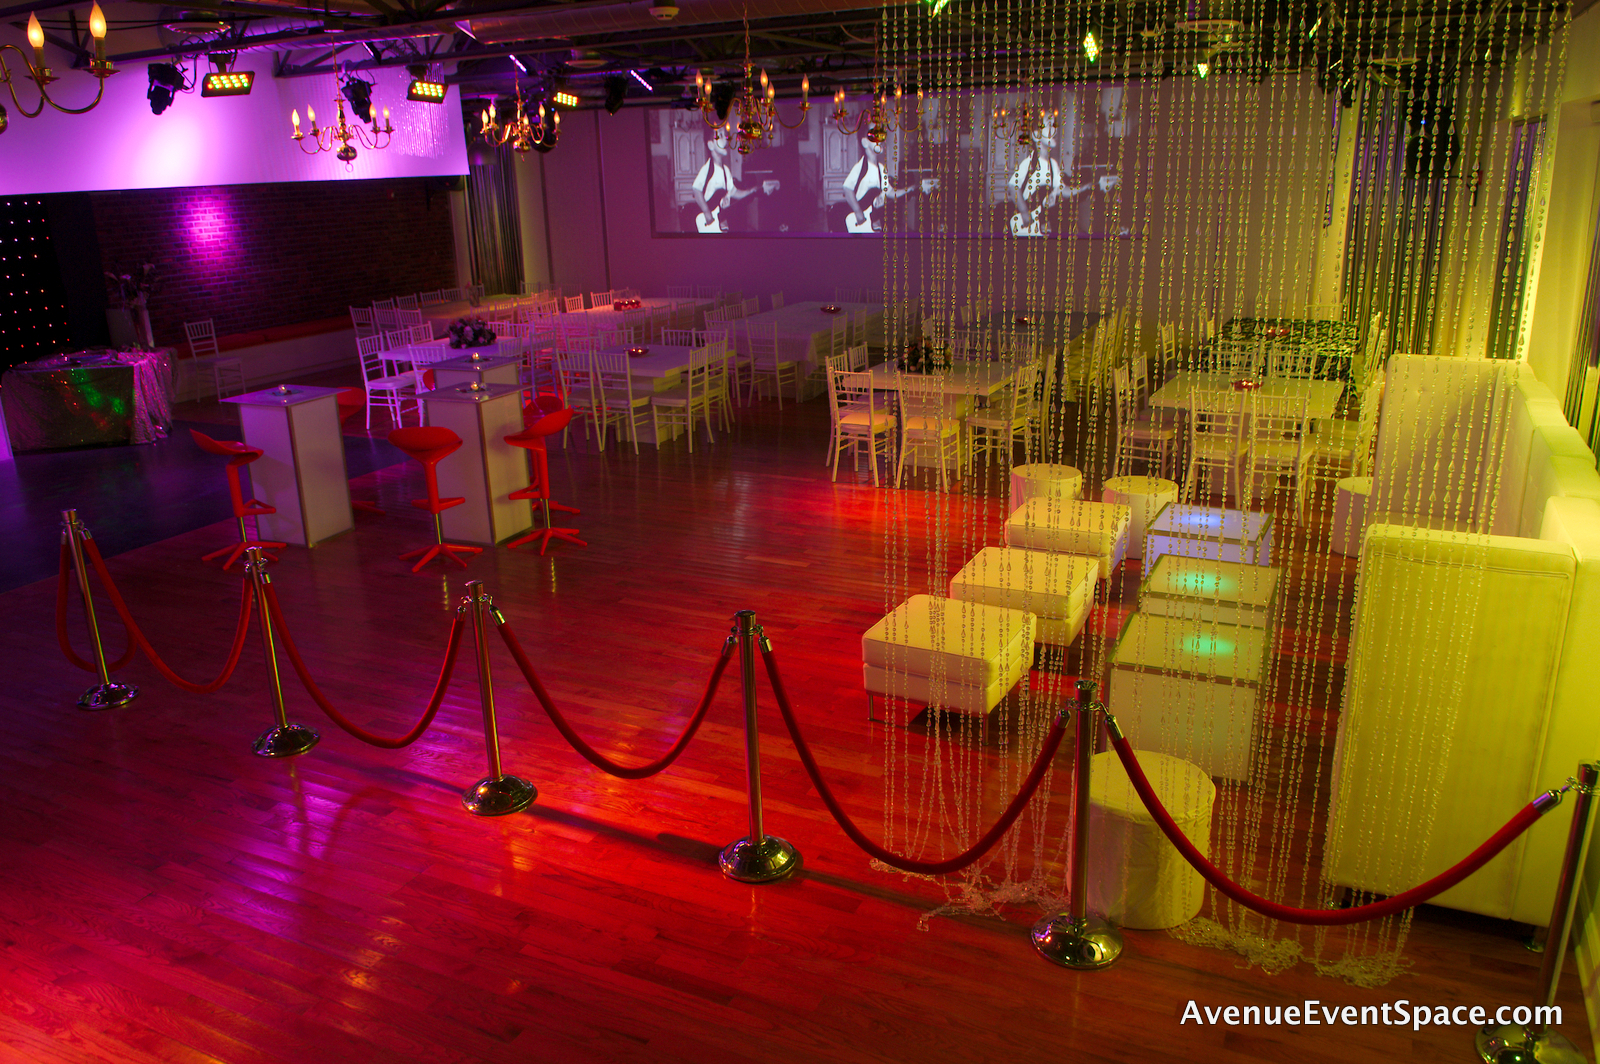 Party room NJ and event Space NJ